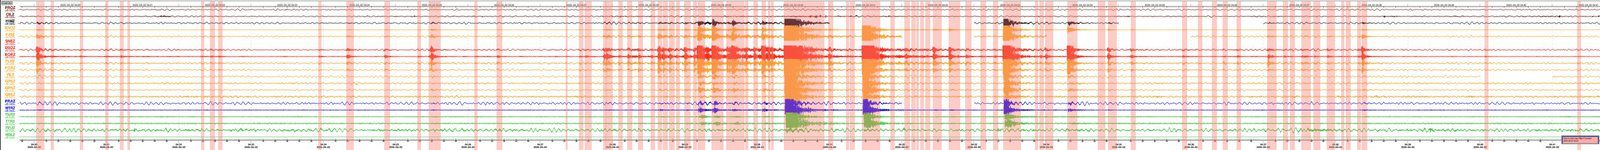 Piton de La Fournaise - seismic cries on 02.04.2020 - (© OVPF-IPGP). - one click to enlarge.